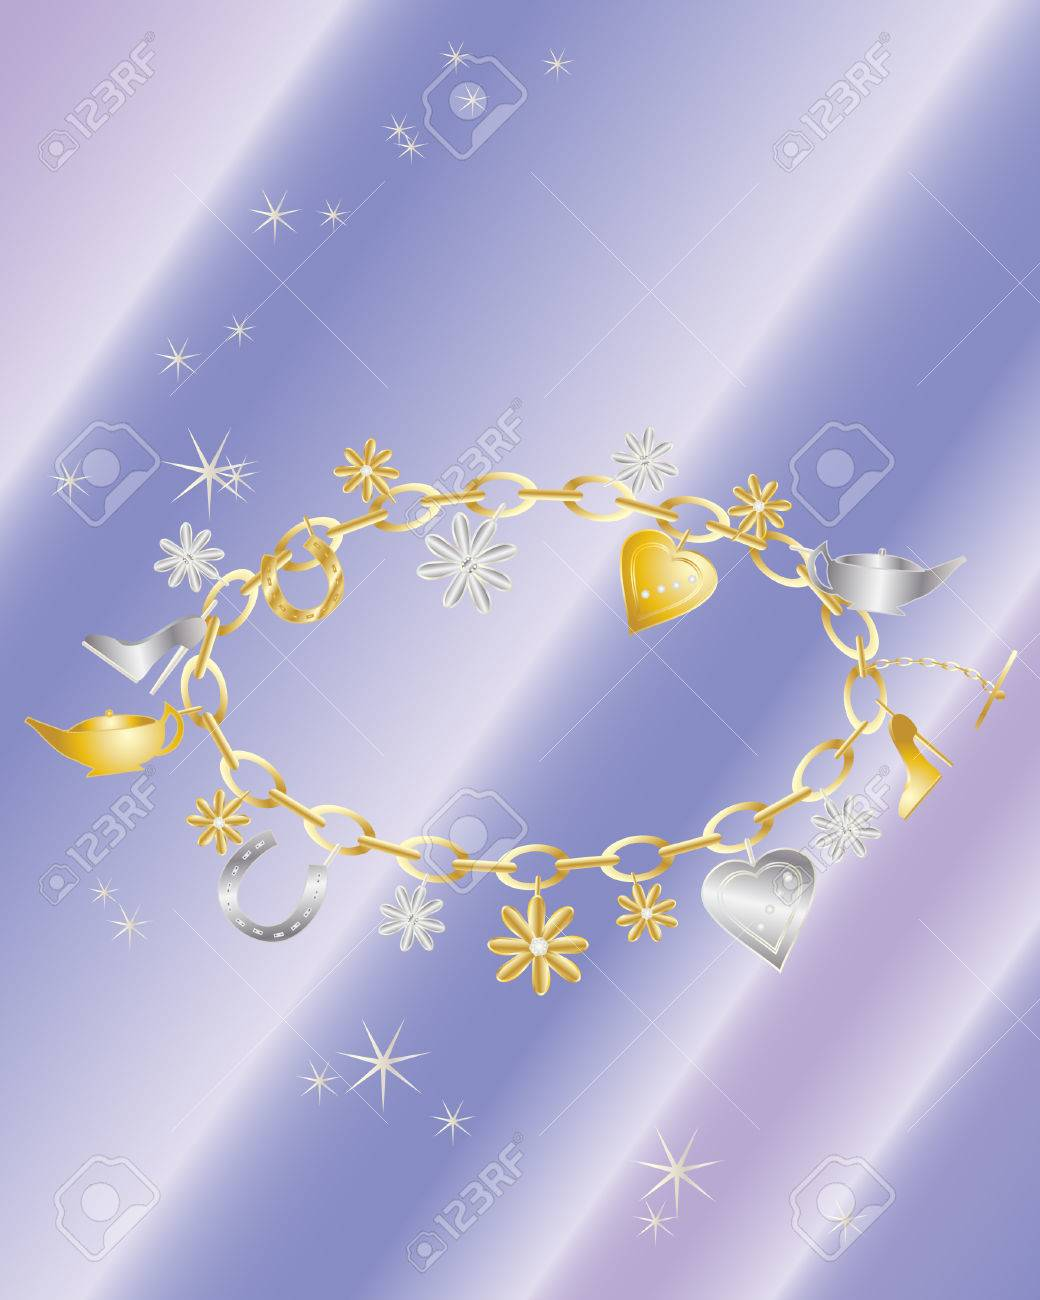 An Illustration Of A Charm Bracelet With Gold And Silver Charms 1040x1300